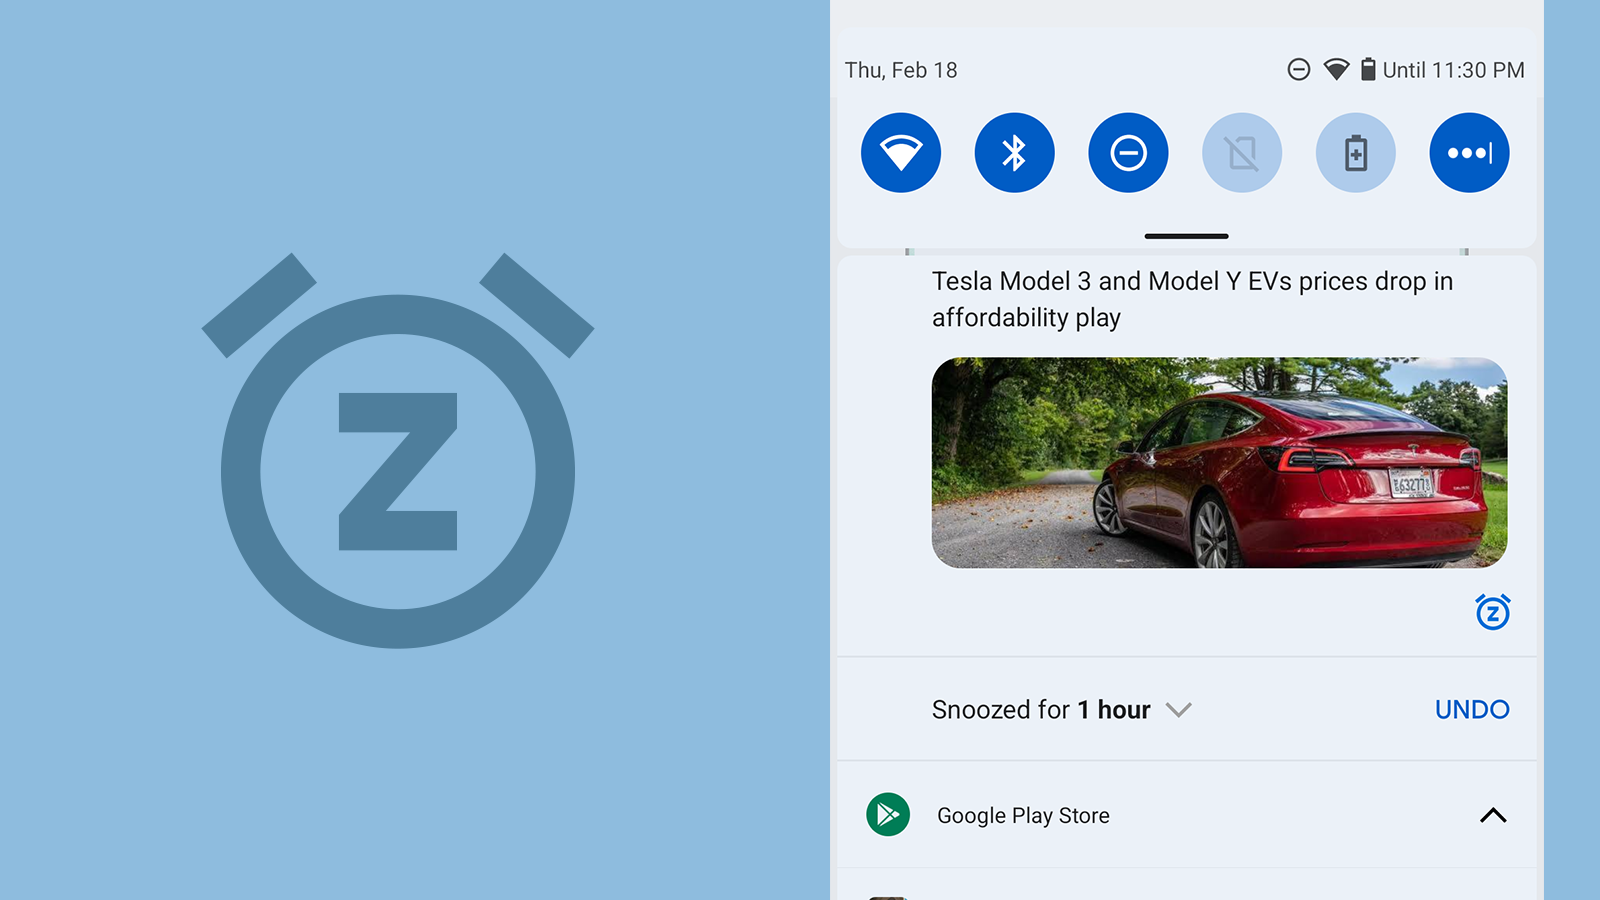 Snoozing notifications becomes more convenient with Android 12